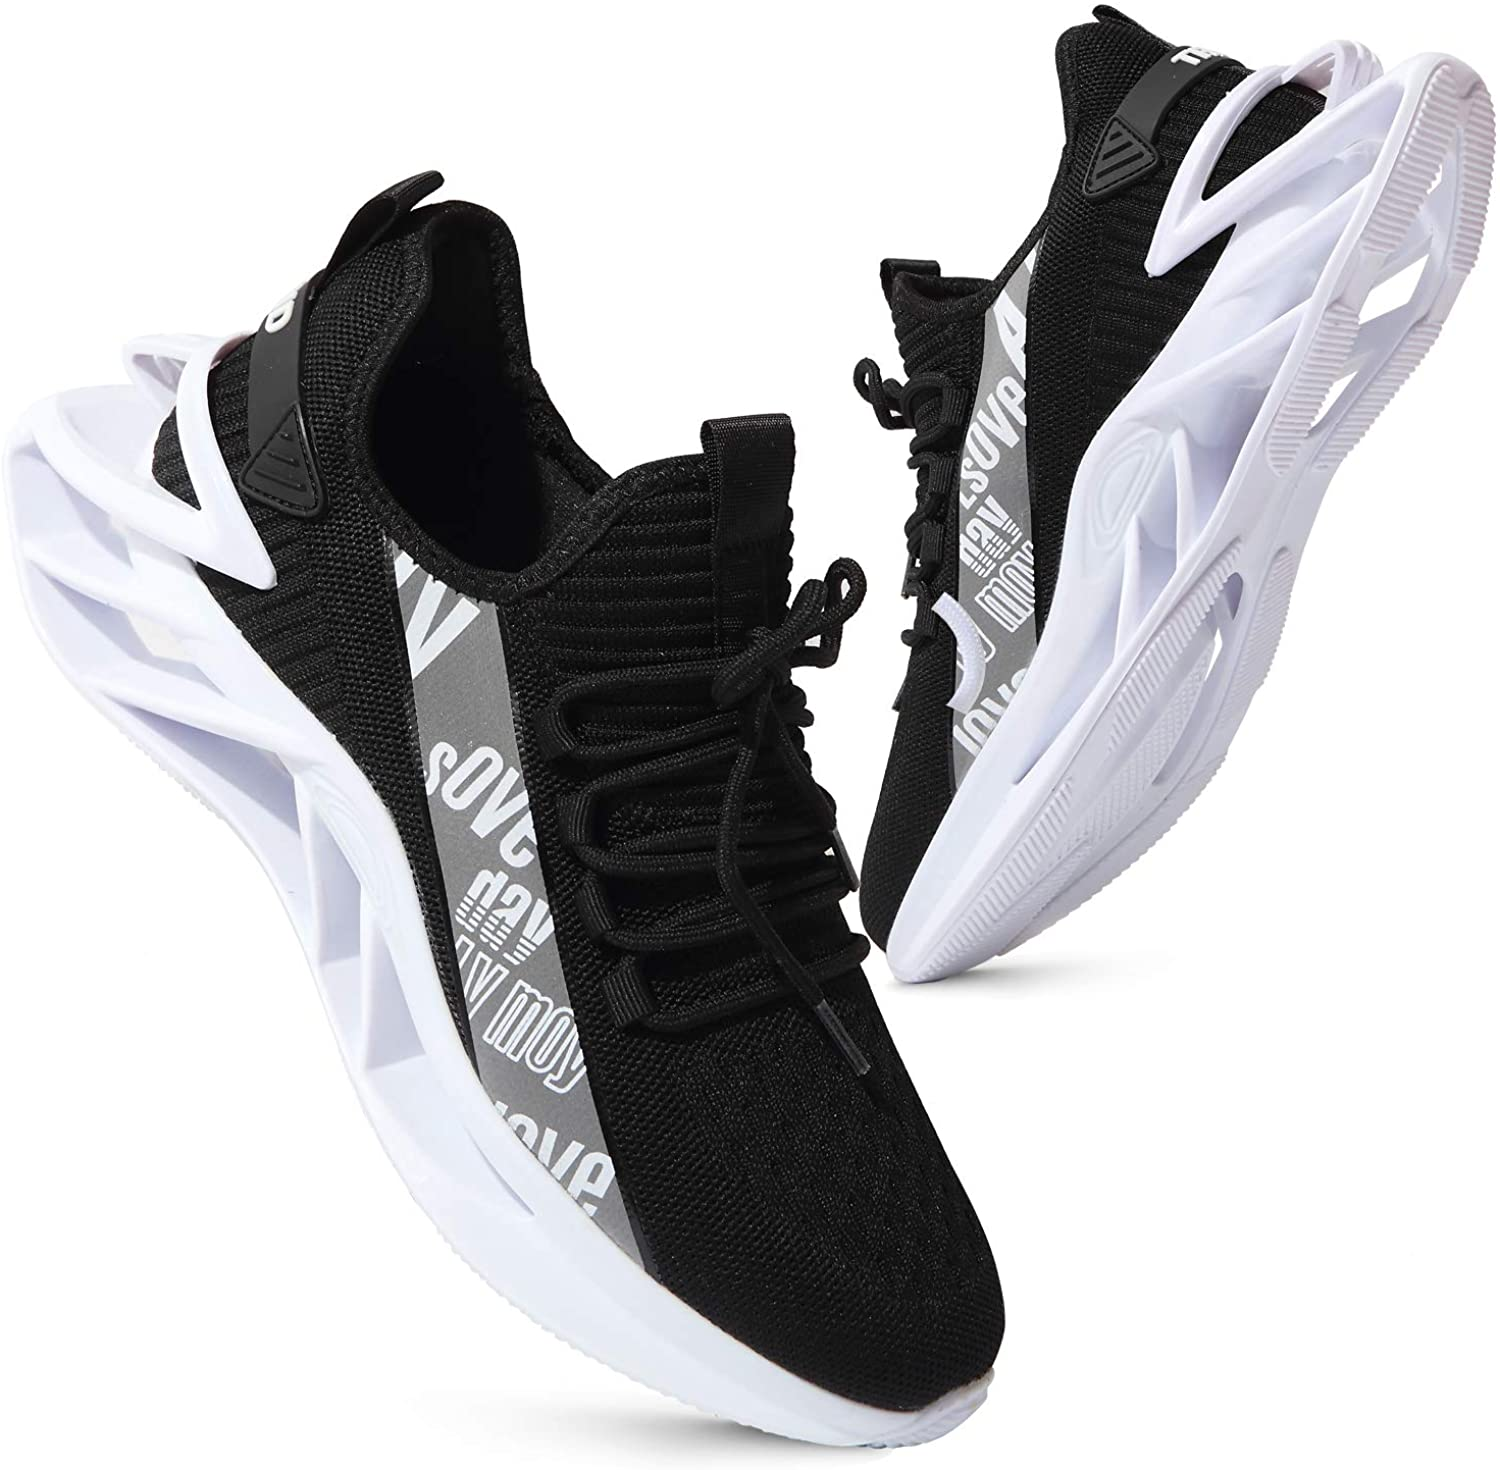 kokib Men's Running 5% OFF Sports Walking Special Campaign Shoes Lightweight Mesh Breath